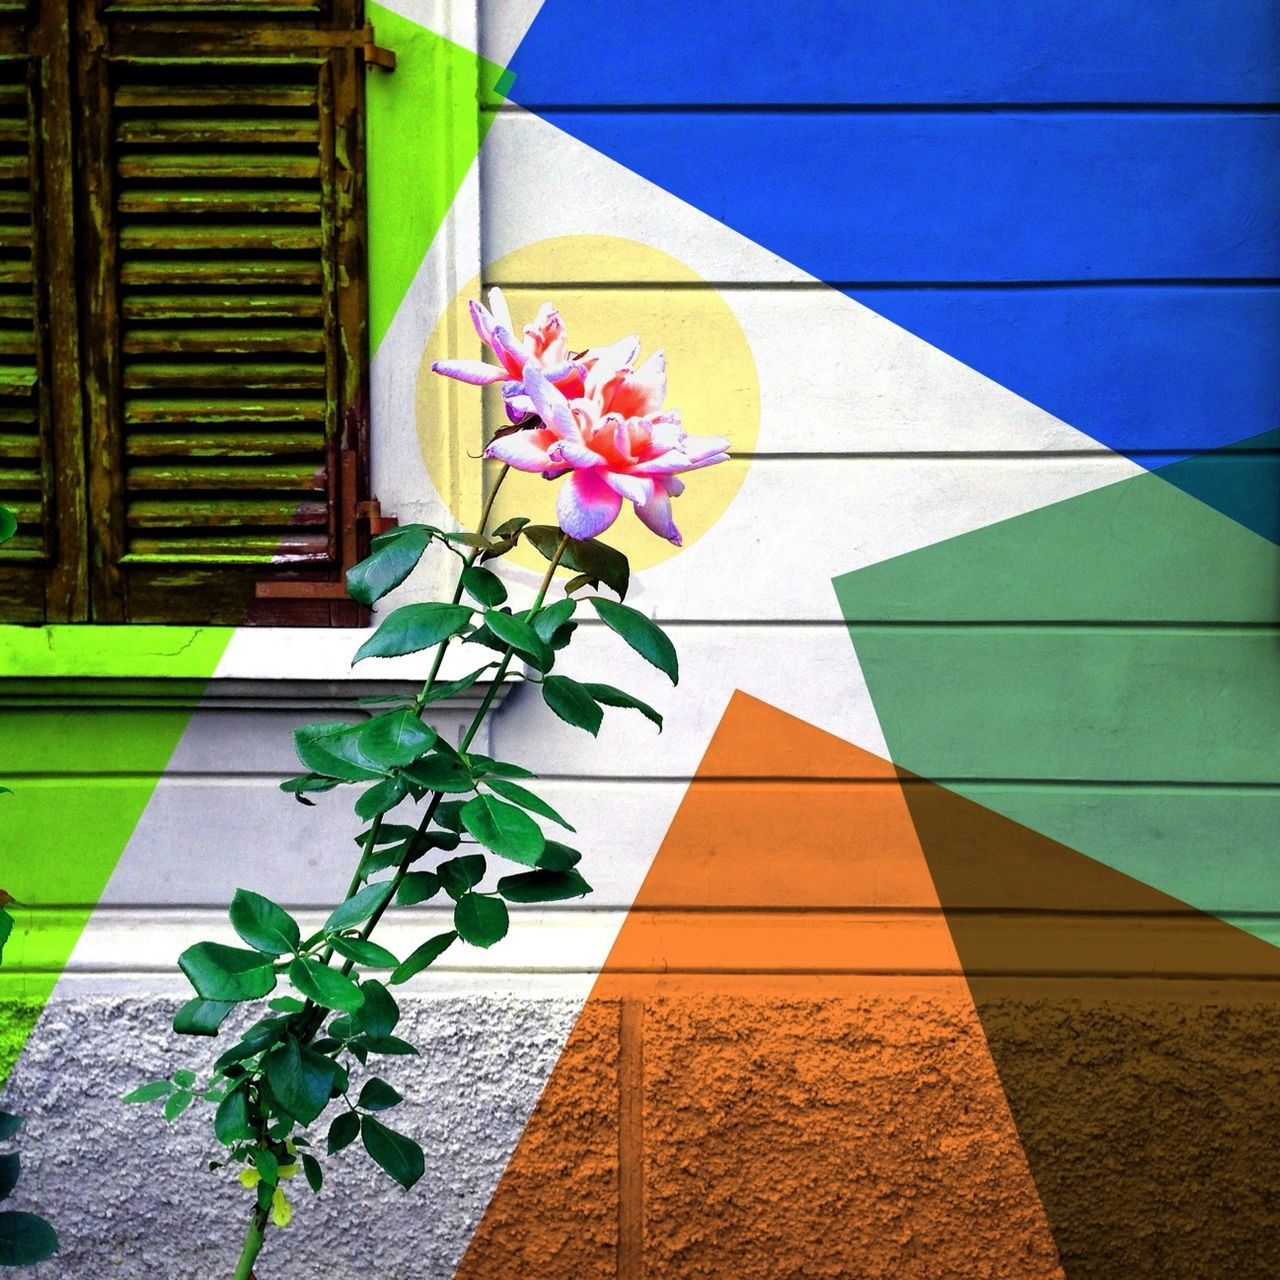 growth, multi colored, leaf, window, plant, no people, green color, architecture, nature, built structure, day, outdoors, close-up